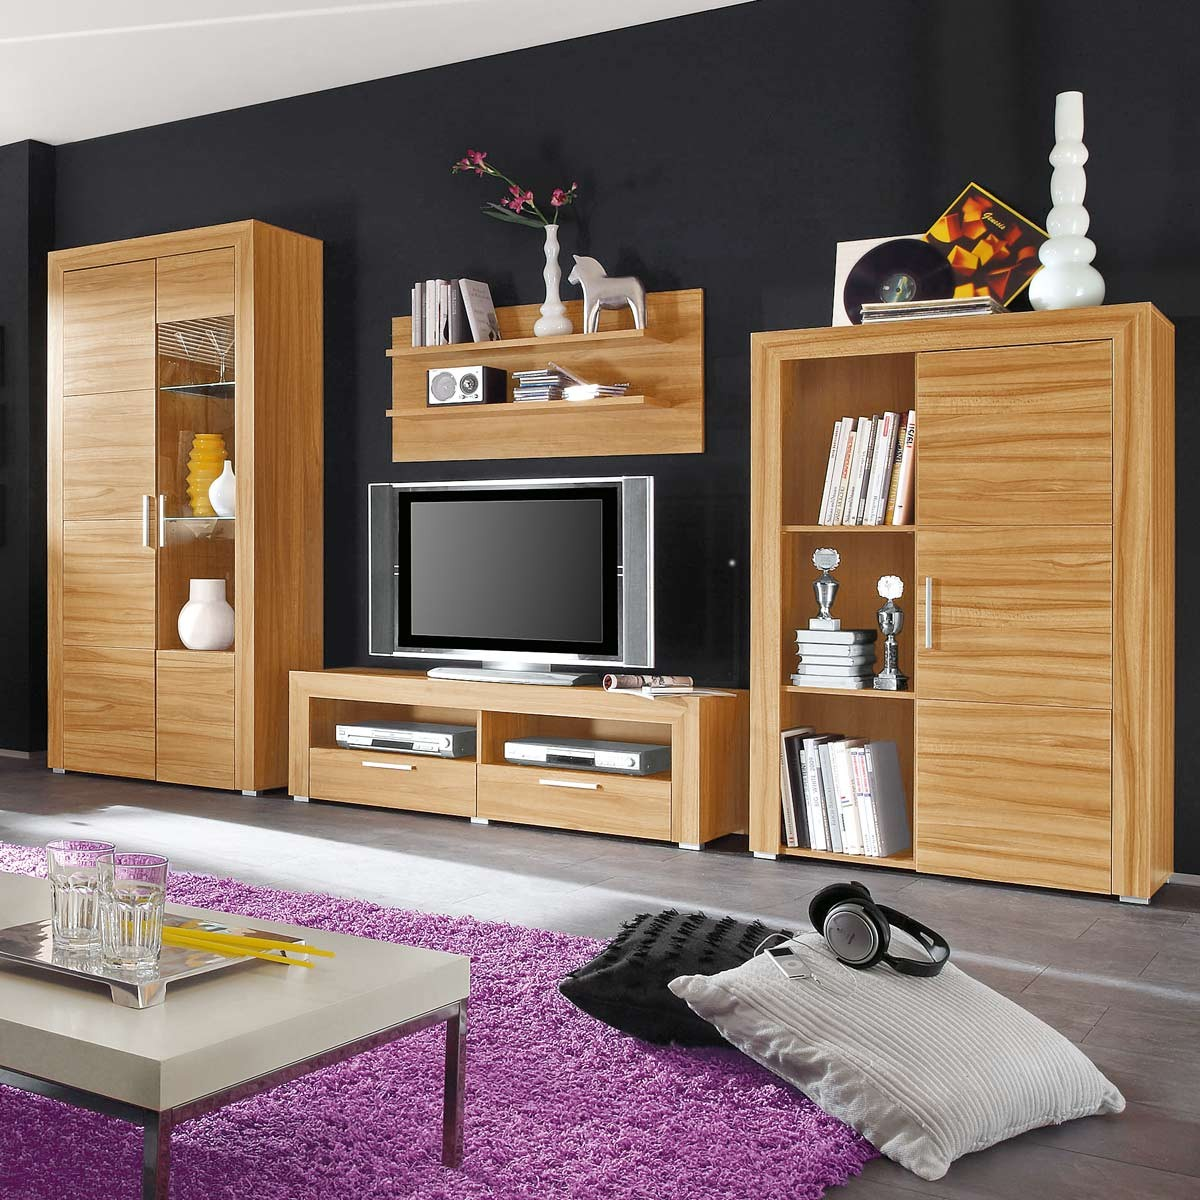 anbauwand salu in kernbuche laminat mit beleuchtung. Black Bedroom Furniture Sets. Home Design Ideas